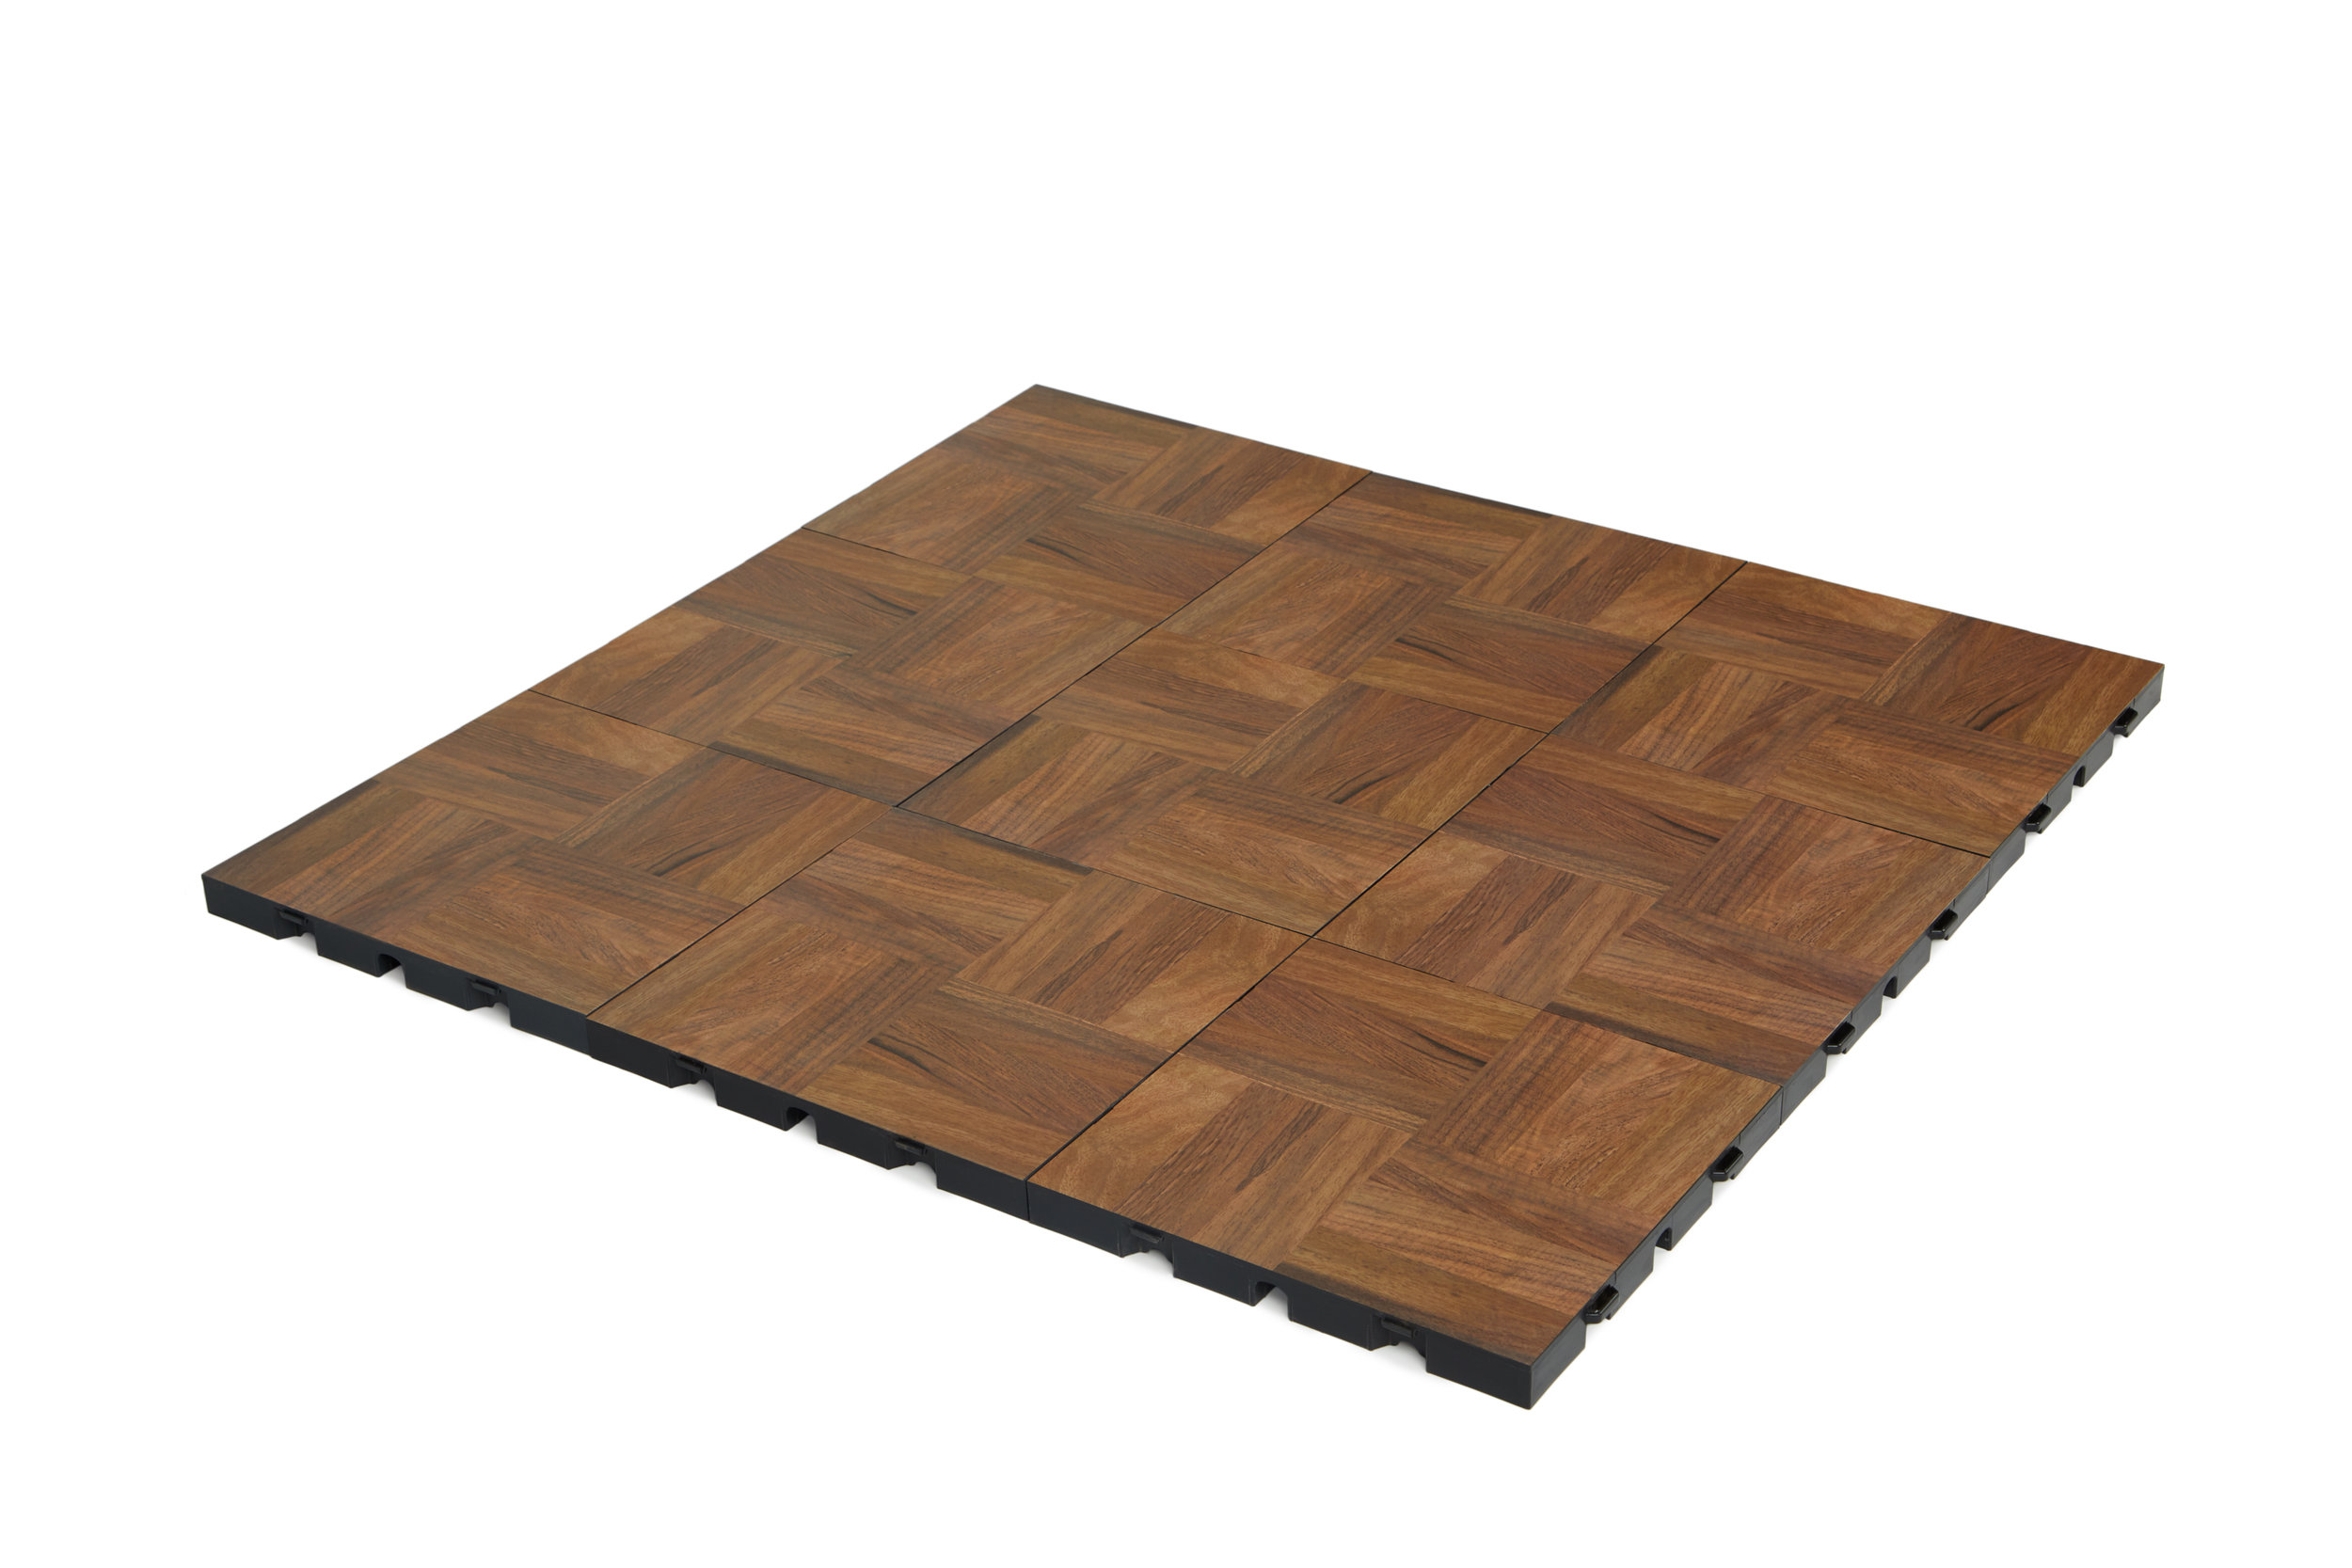 Need Flooring For Your Modular Building? - We offer a complete line of modular flooring for temporary and permanent use.